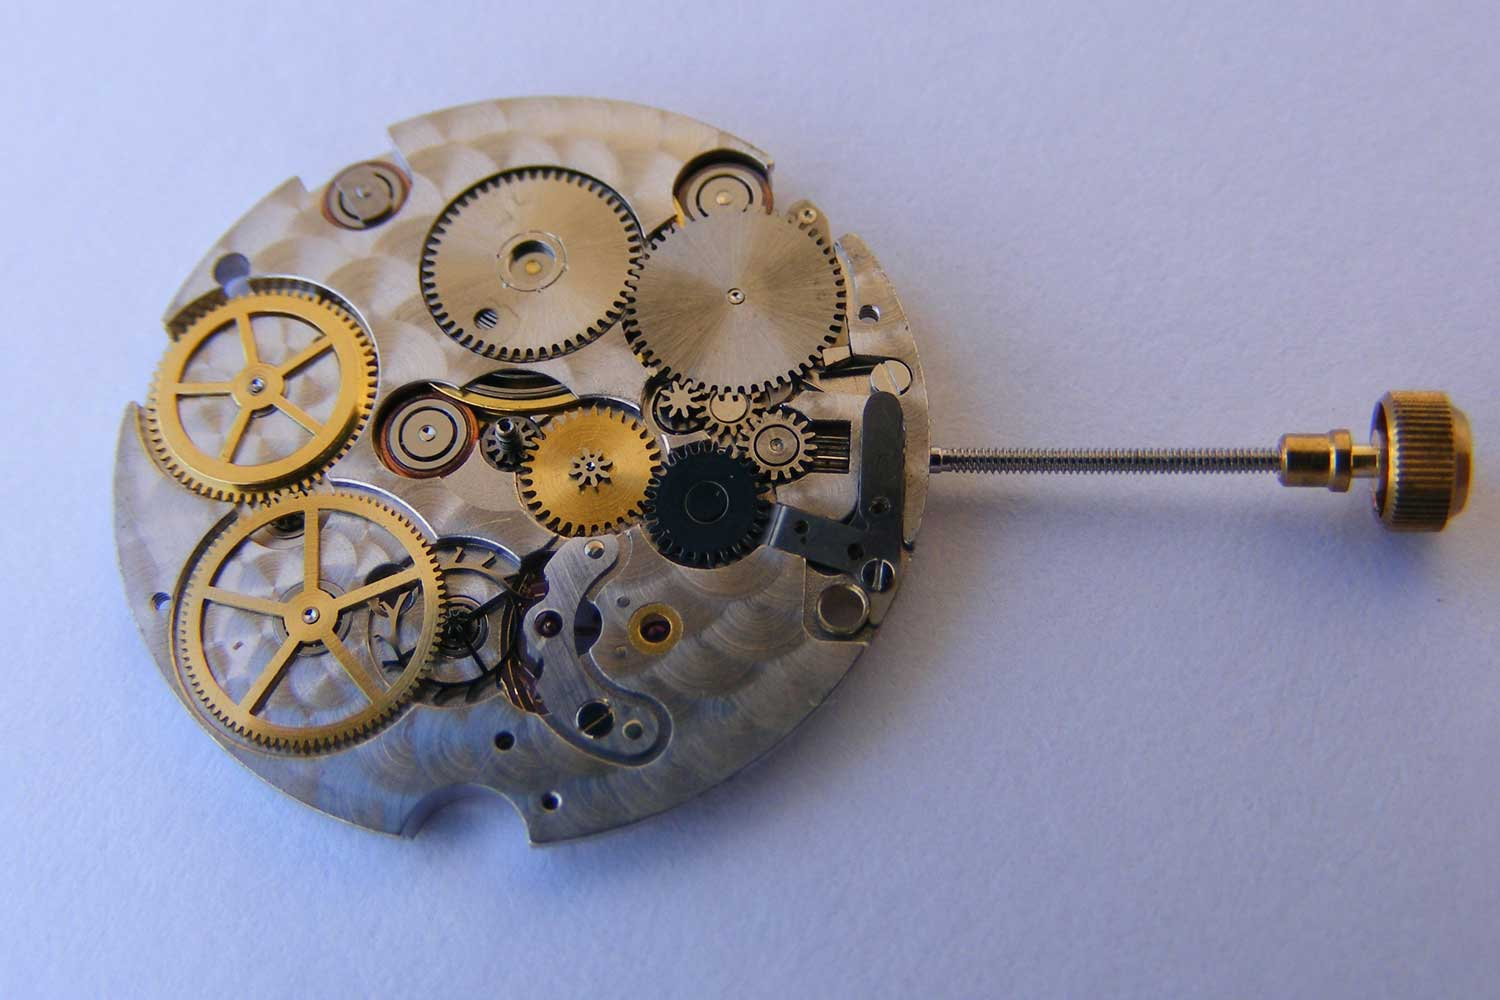 Jean Lassale's Calibre 1200 from the front (Image: commons.wikimedia.org)